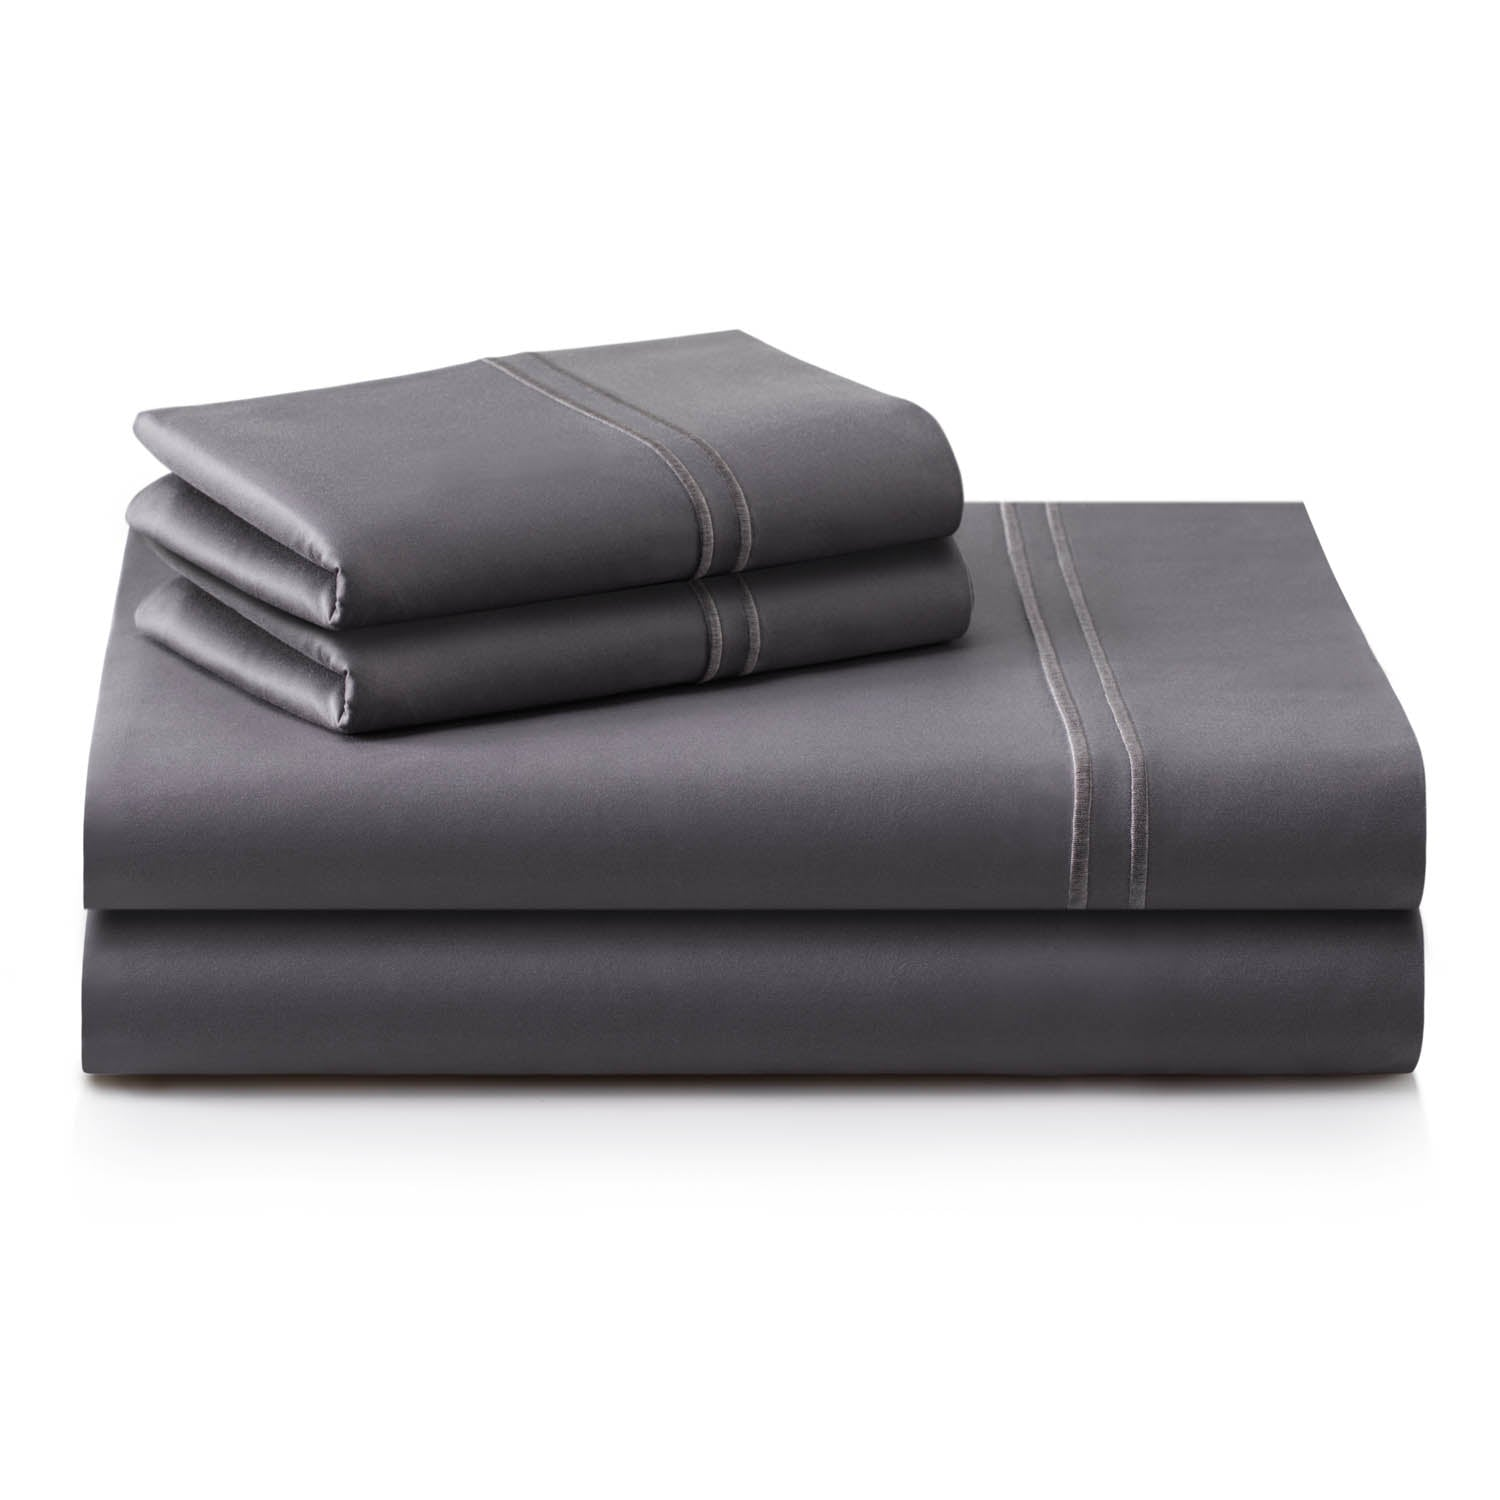 Supima Cotton Sheets Cal King Charcoal - Yogasleep by Malouf